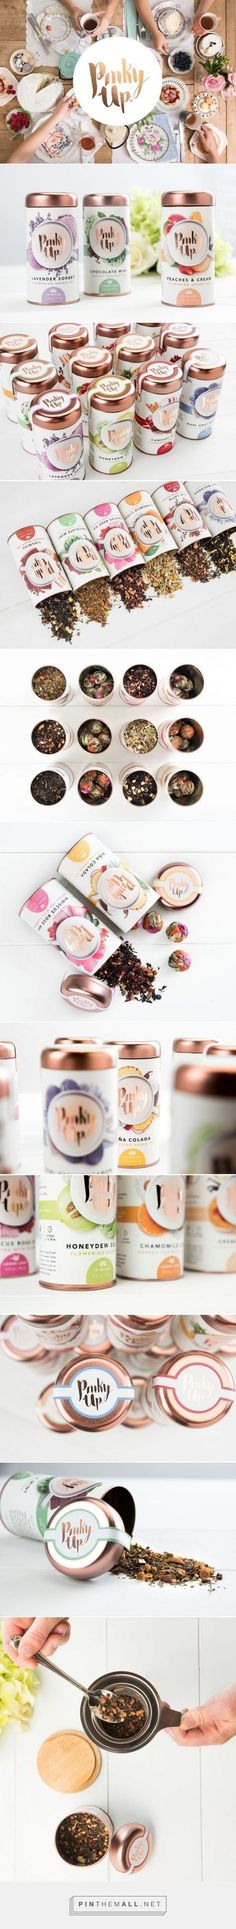 (54) Pinky Up Tea / Packaging / Branding / Design / Ideas / Inspiration / Drink / Tea / Organic / Natural / Rose Gold / Copper / Botanical / Fruits / Flowers